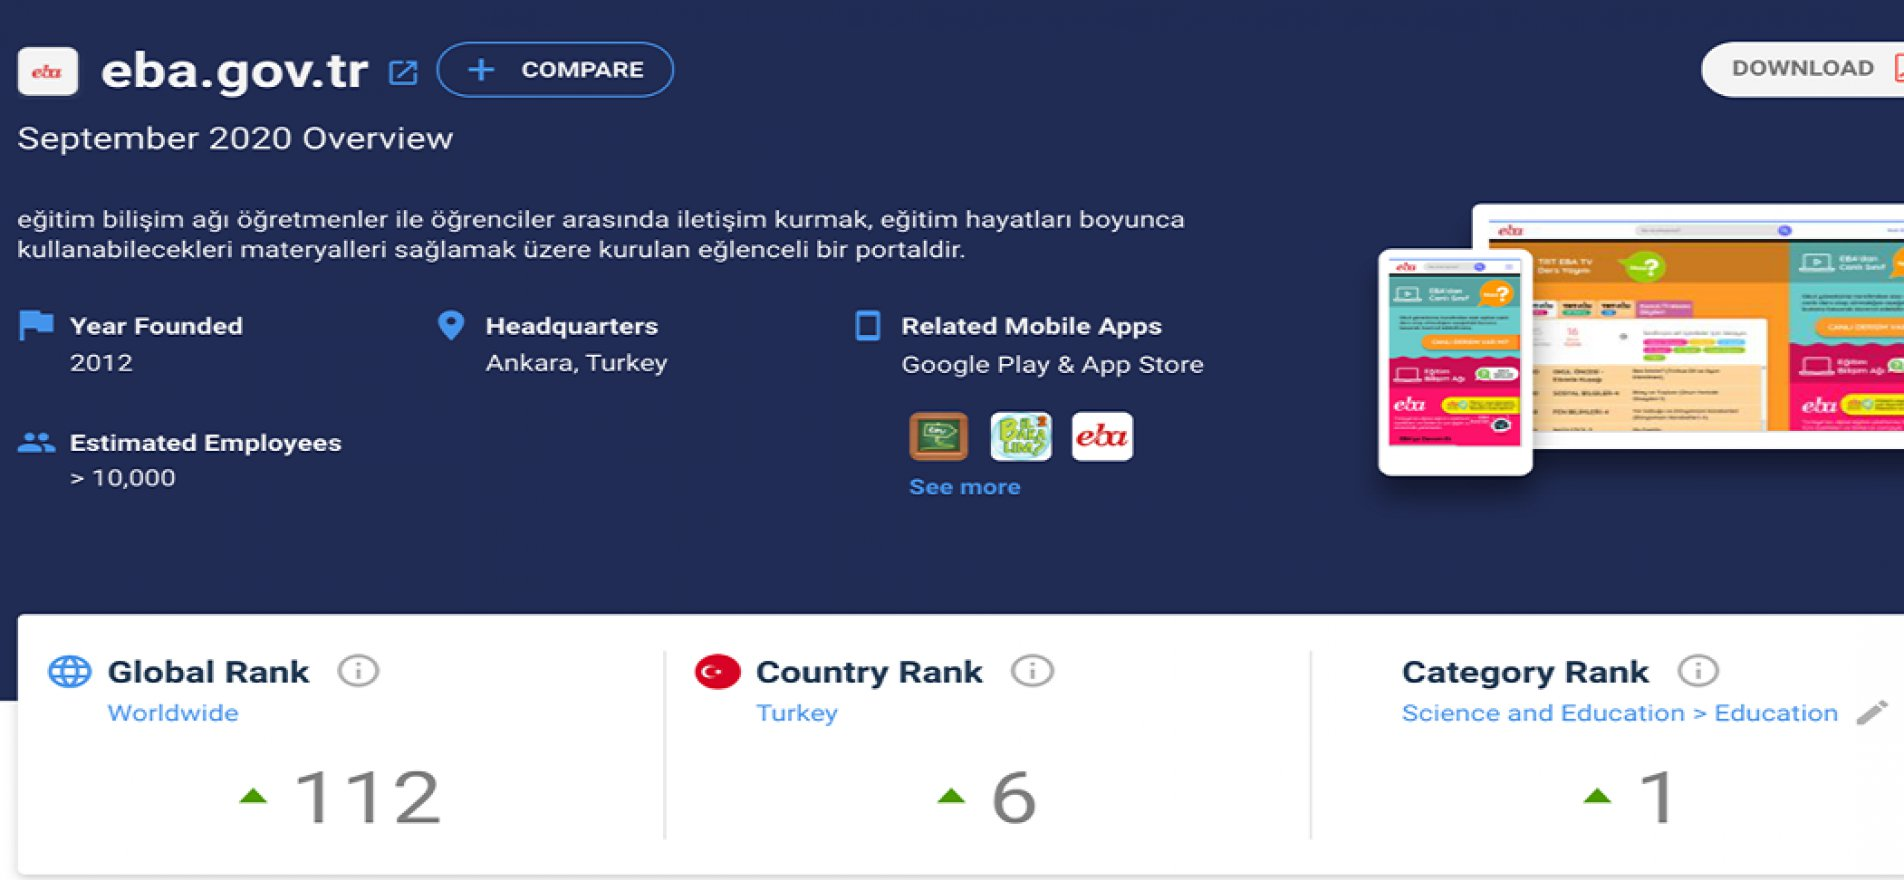 EBA EDUCATION PLATFORM RANKED 1ST IN THE WORLD